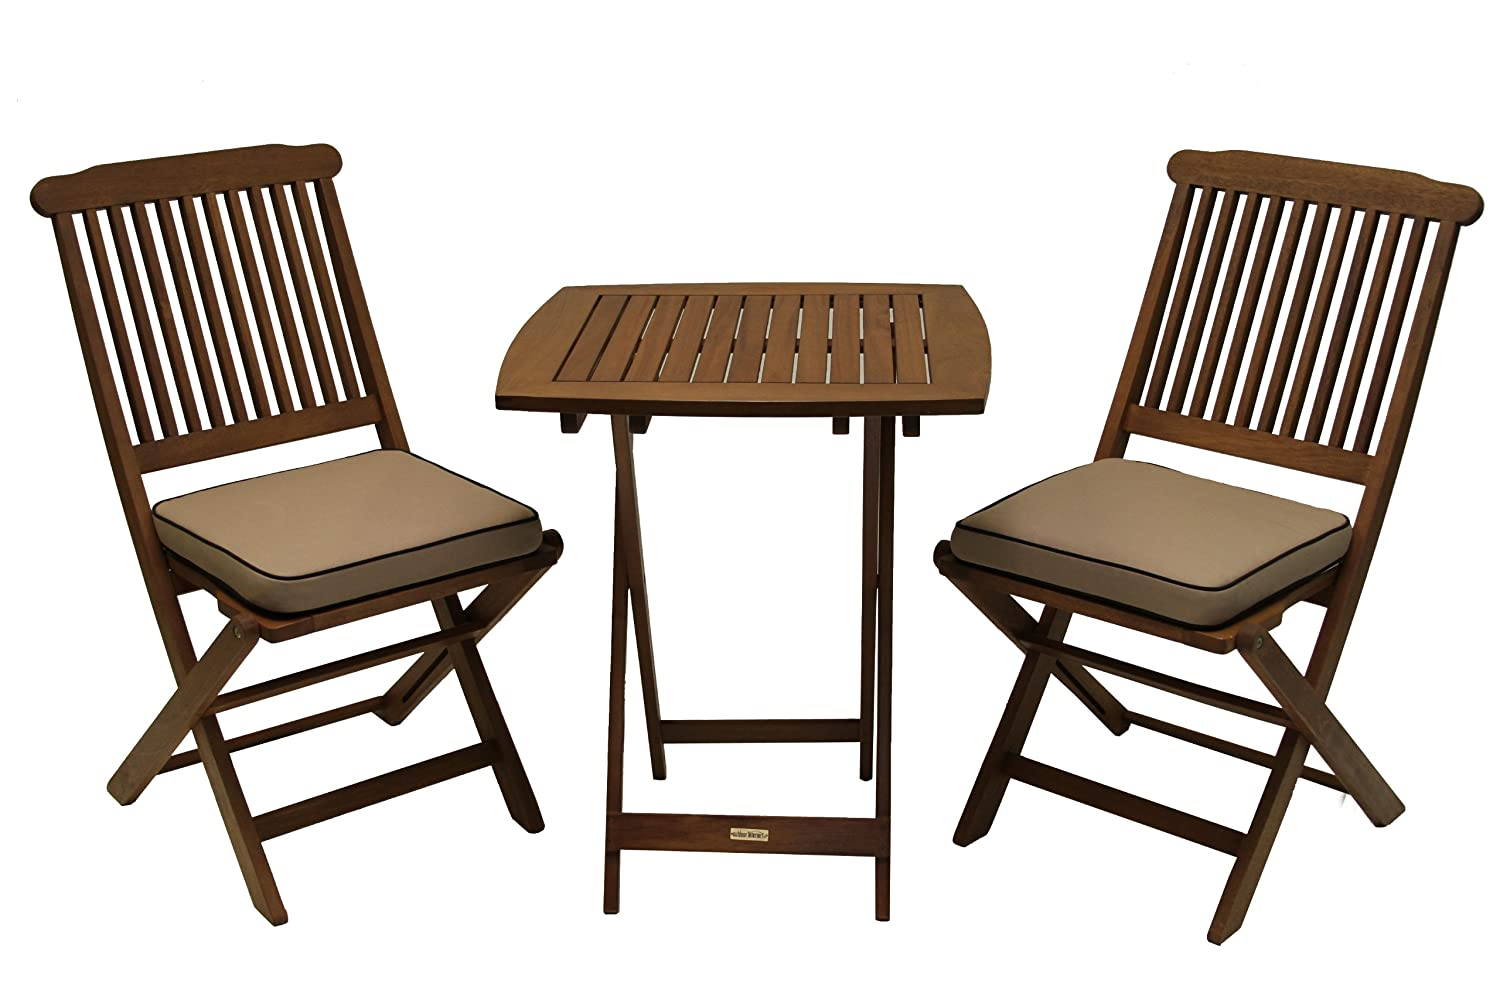 Wood patio furniture sets at the galleria for By the yard furniture